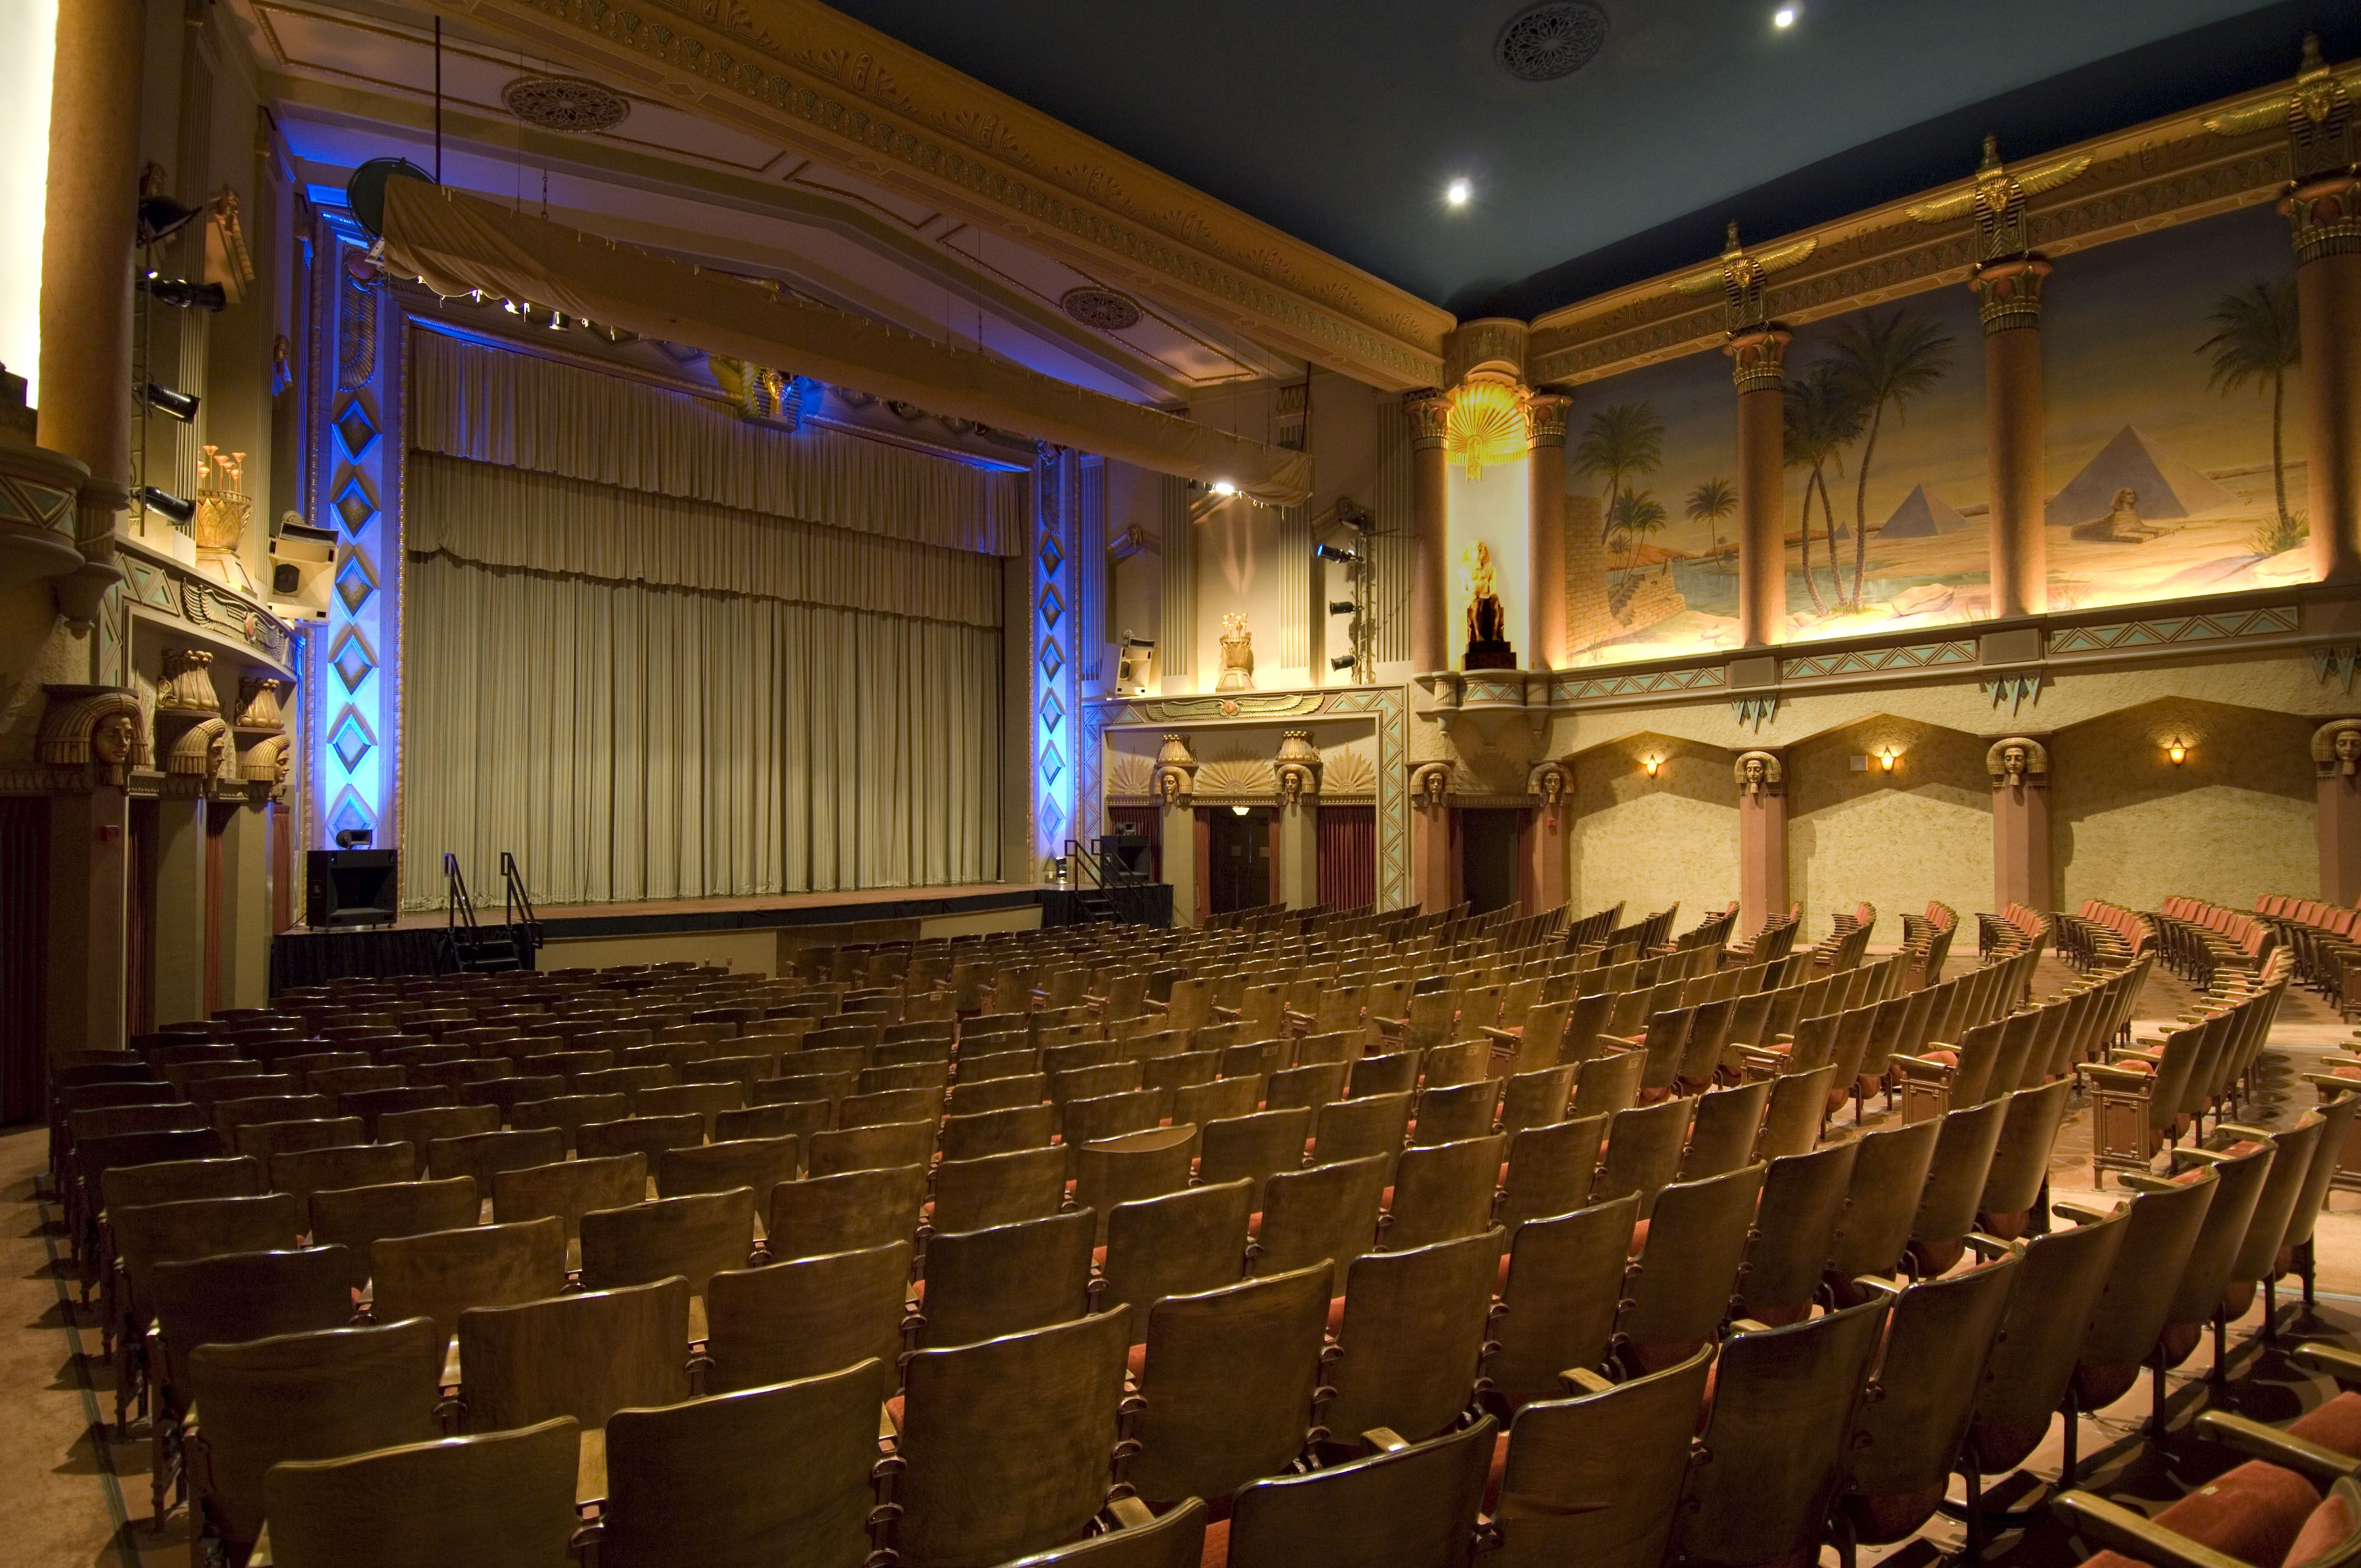 Egyptian theatre north second street dekalb il the is listed on national registry of historic places also rh pinterest